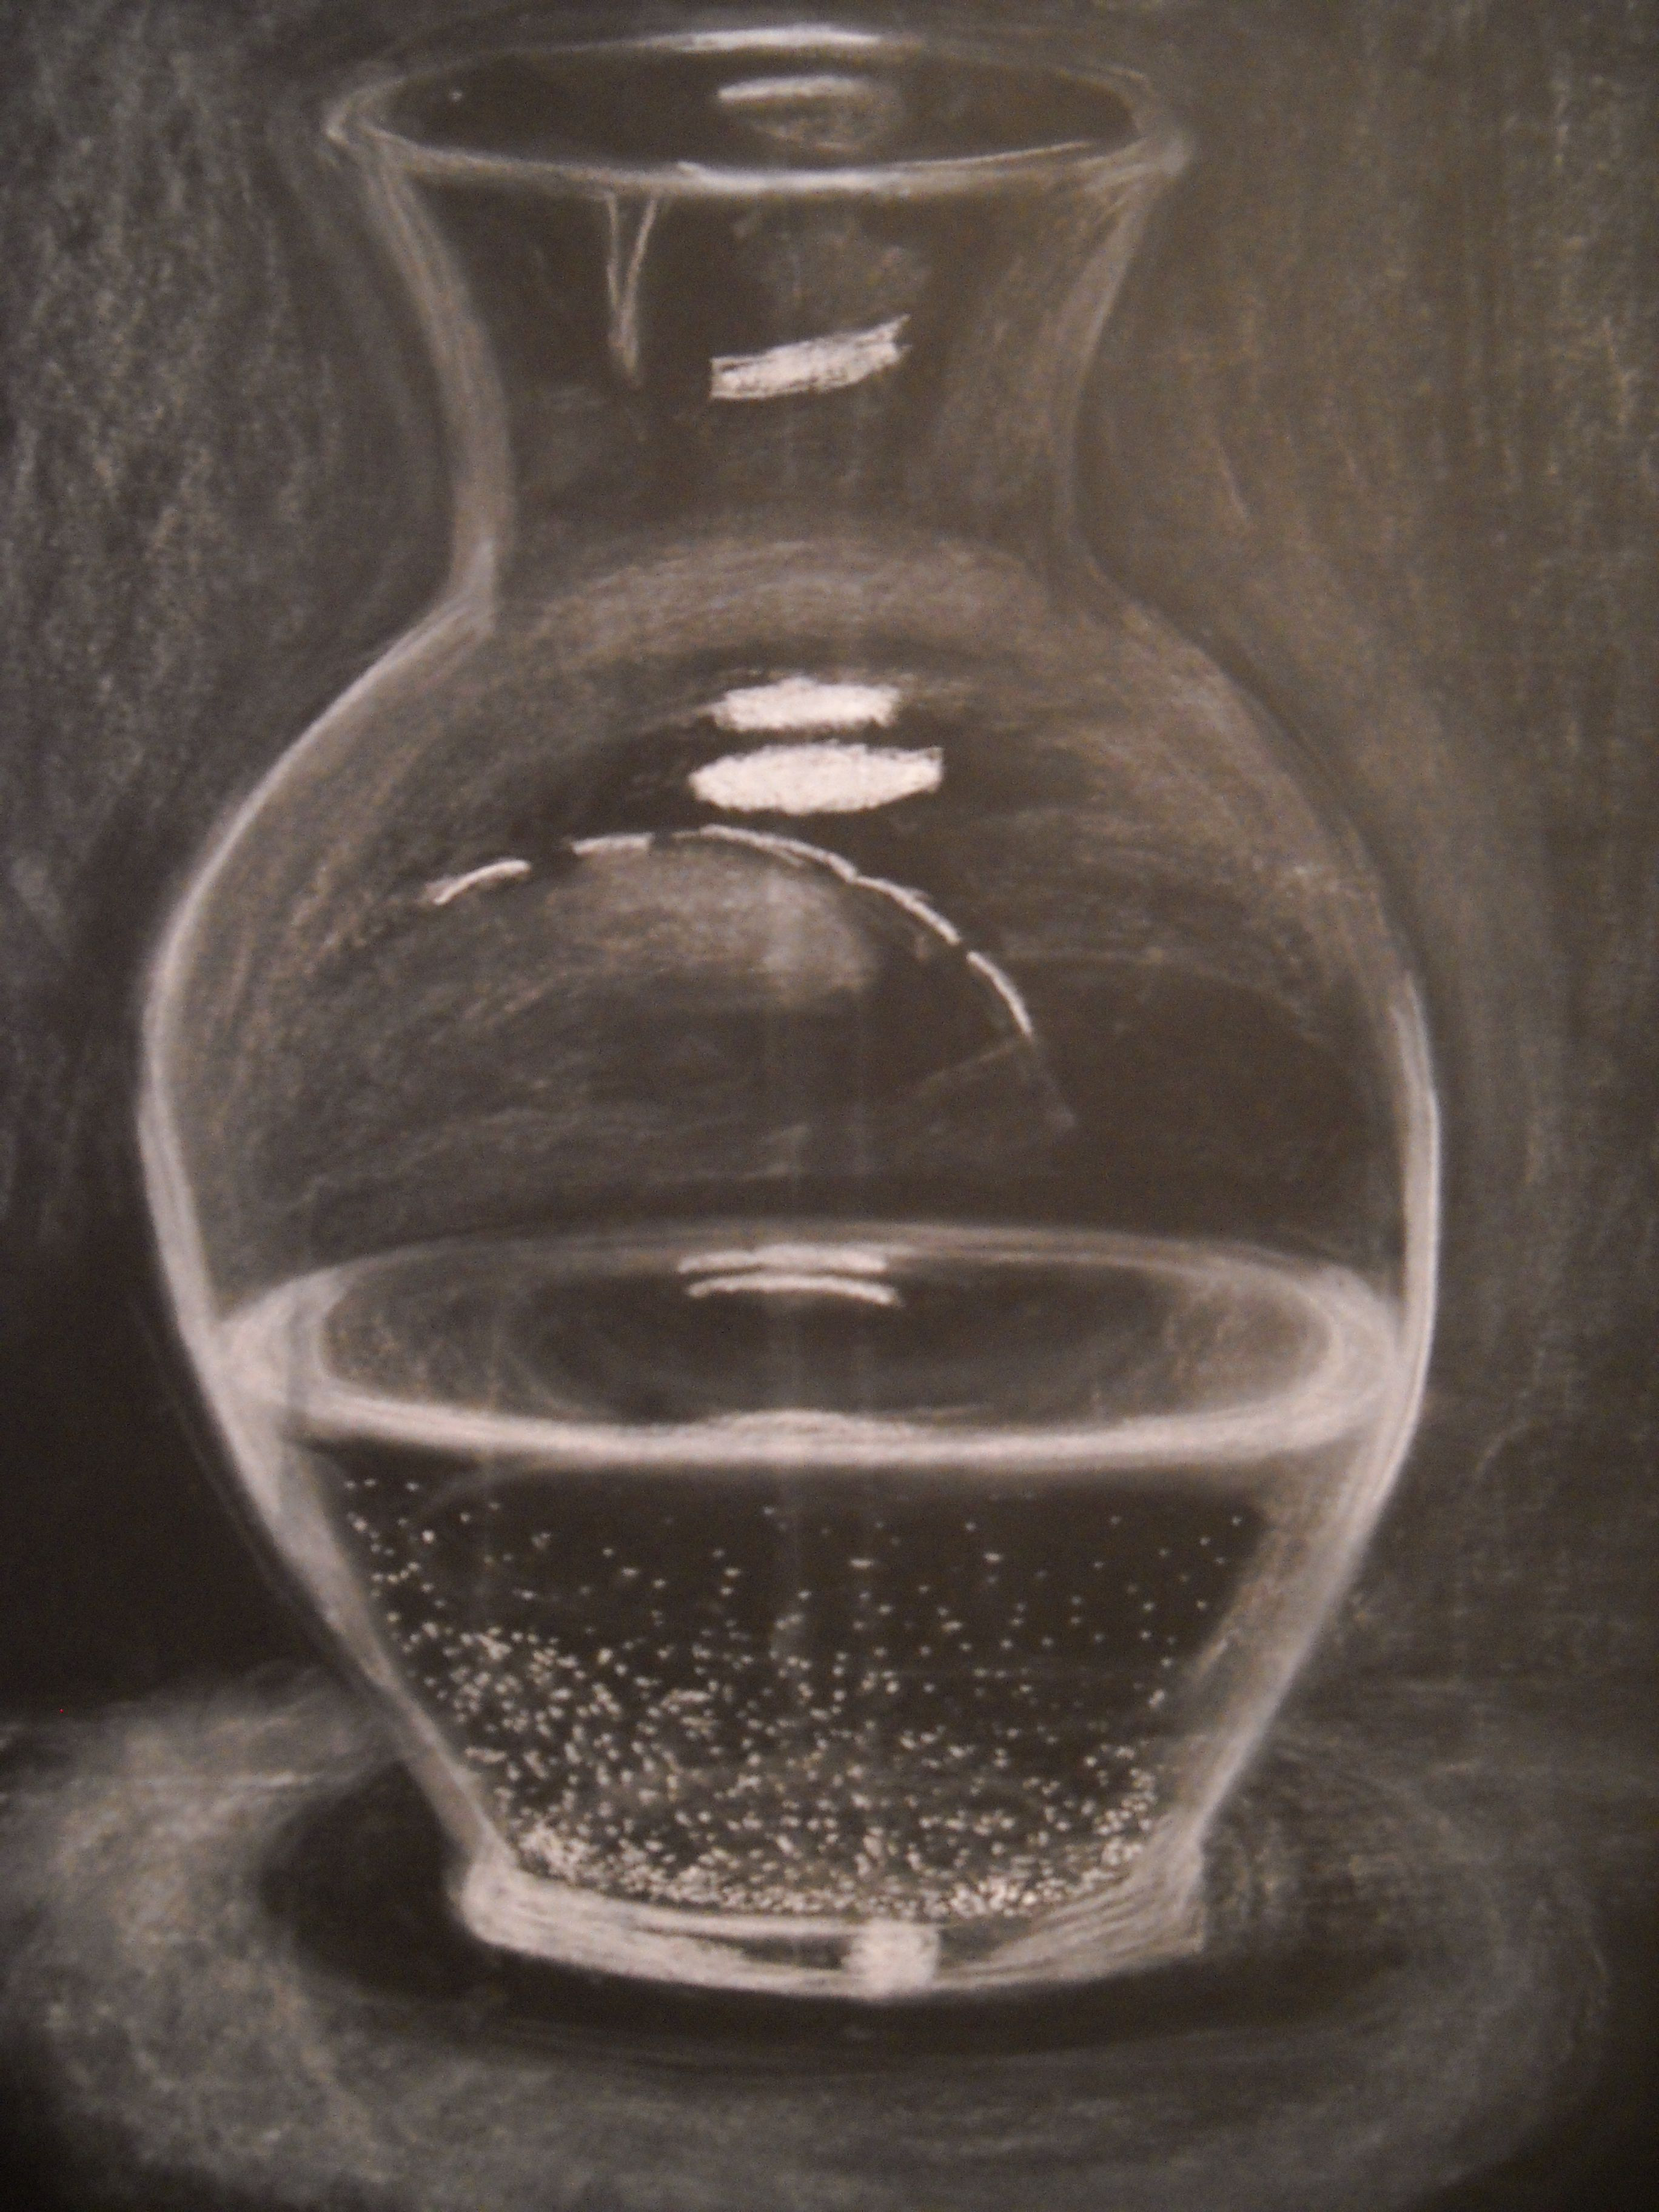 vision glass vases wholesale of glass vase filled with water done in white chalk on black drawing intended for glass vase filled with water done in white chalk on black drawing paper